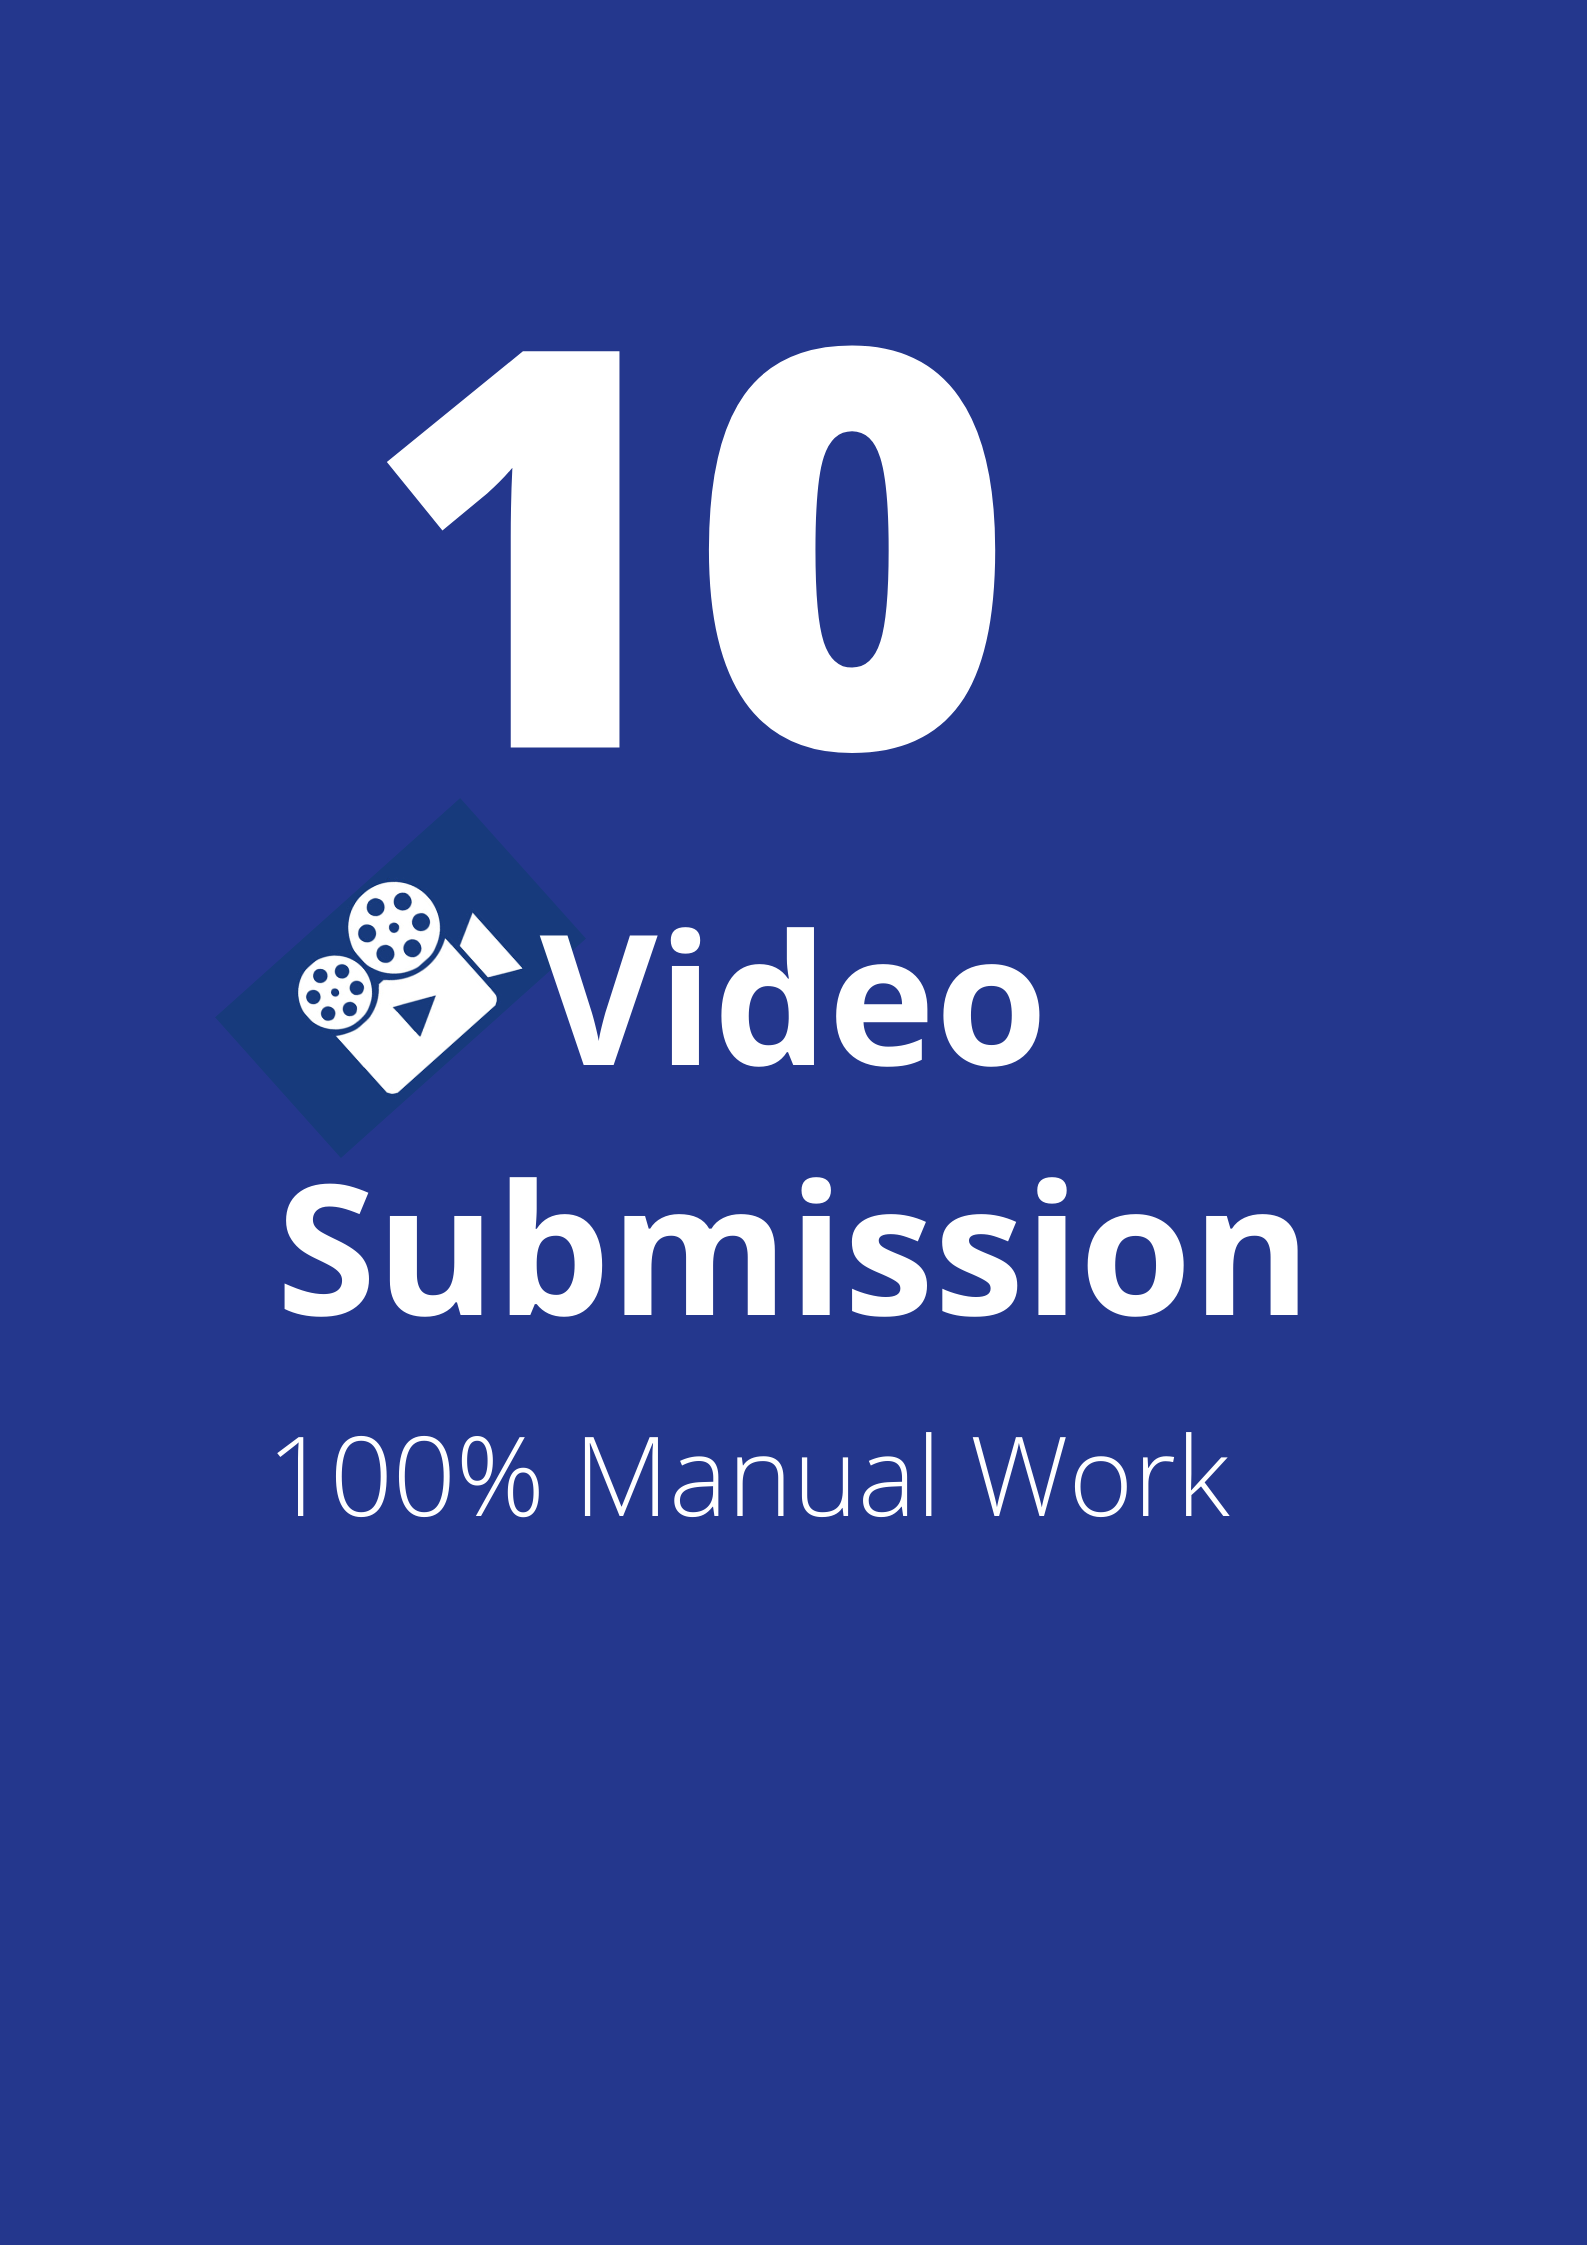 10 video submission 100 Manual